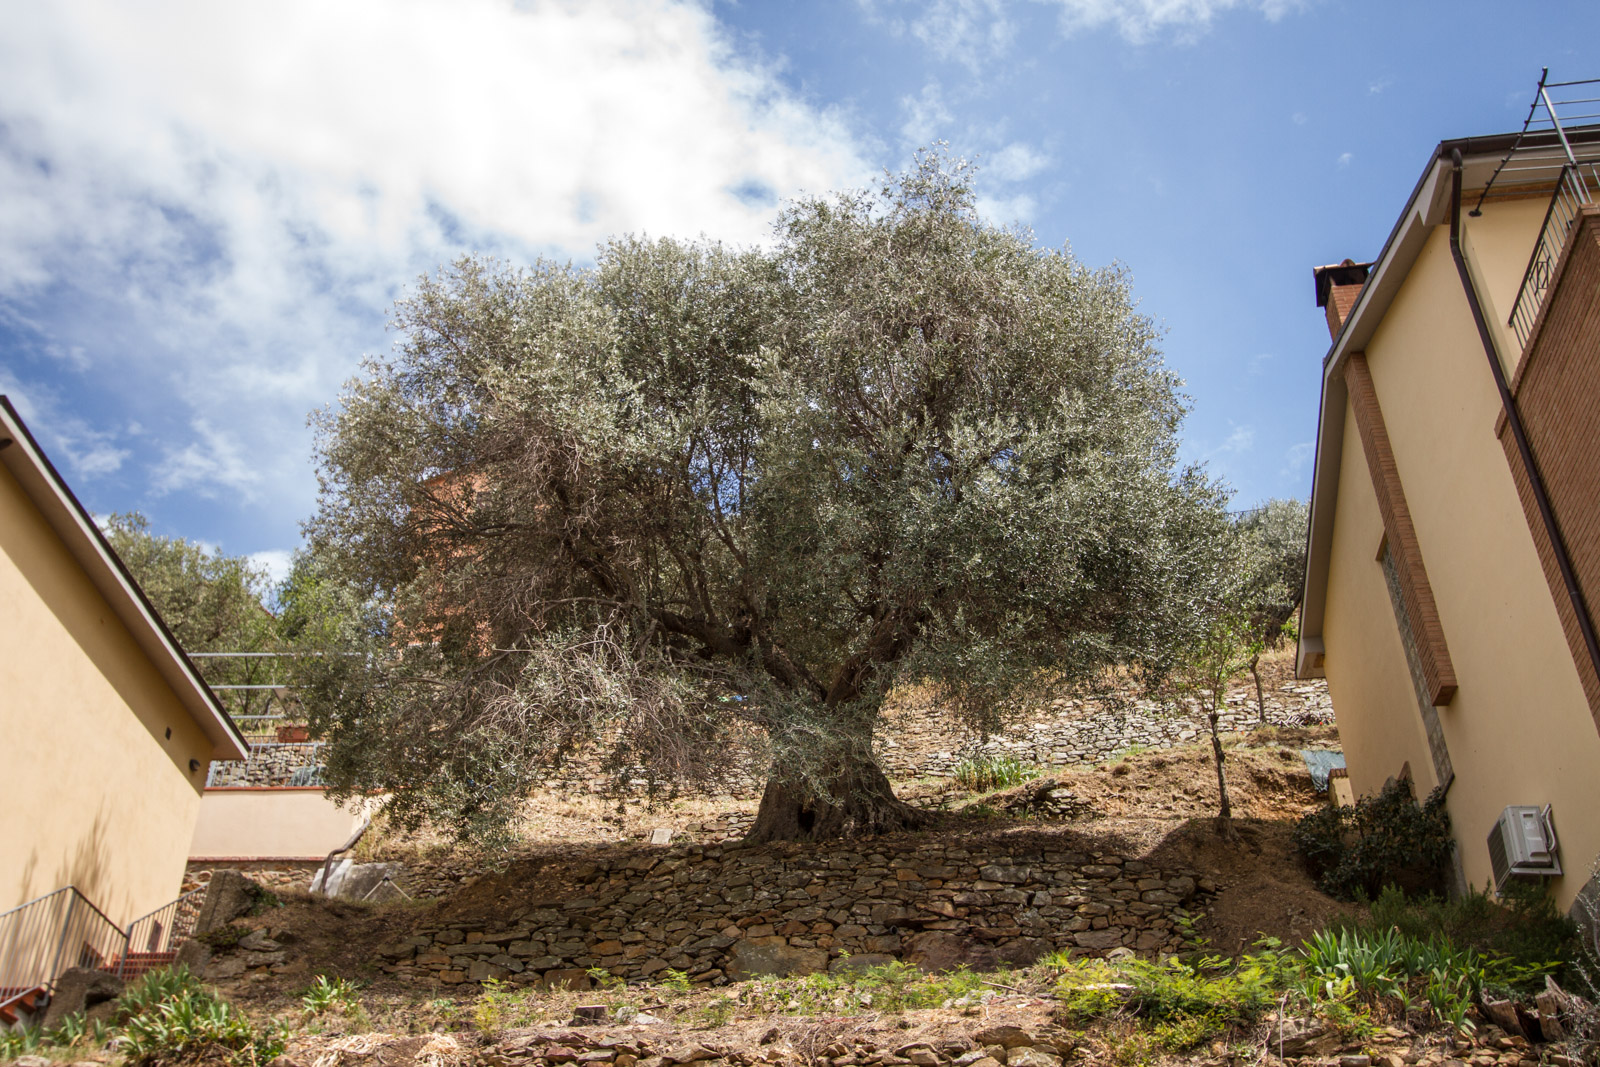 In the centre of the town is a very large old olive tree.